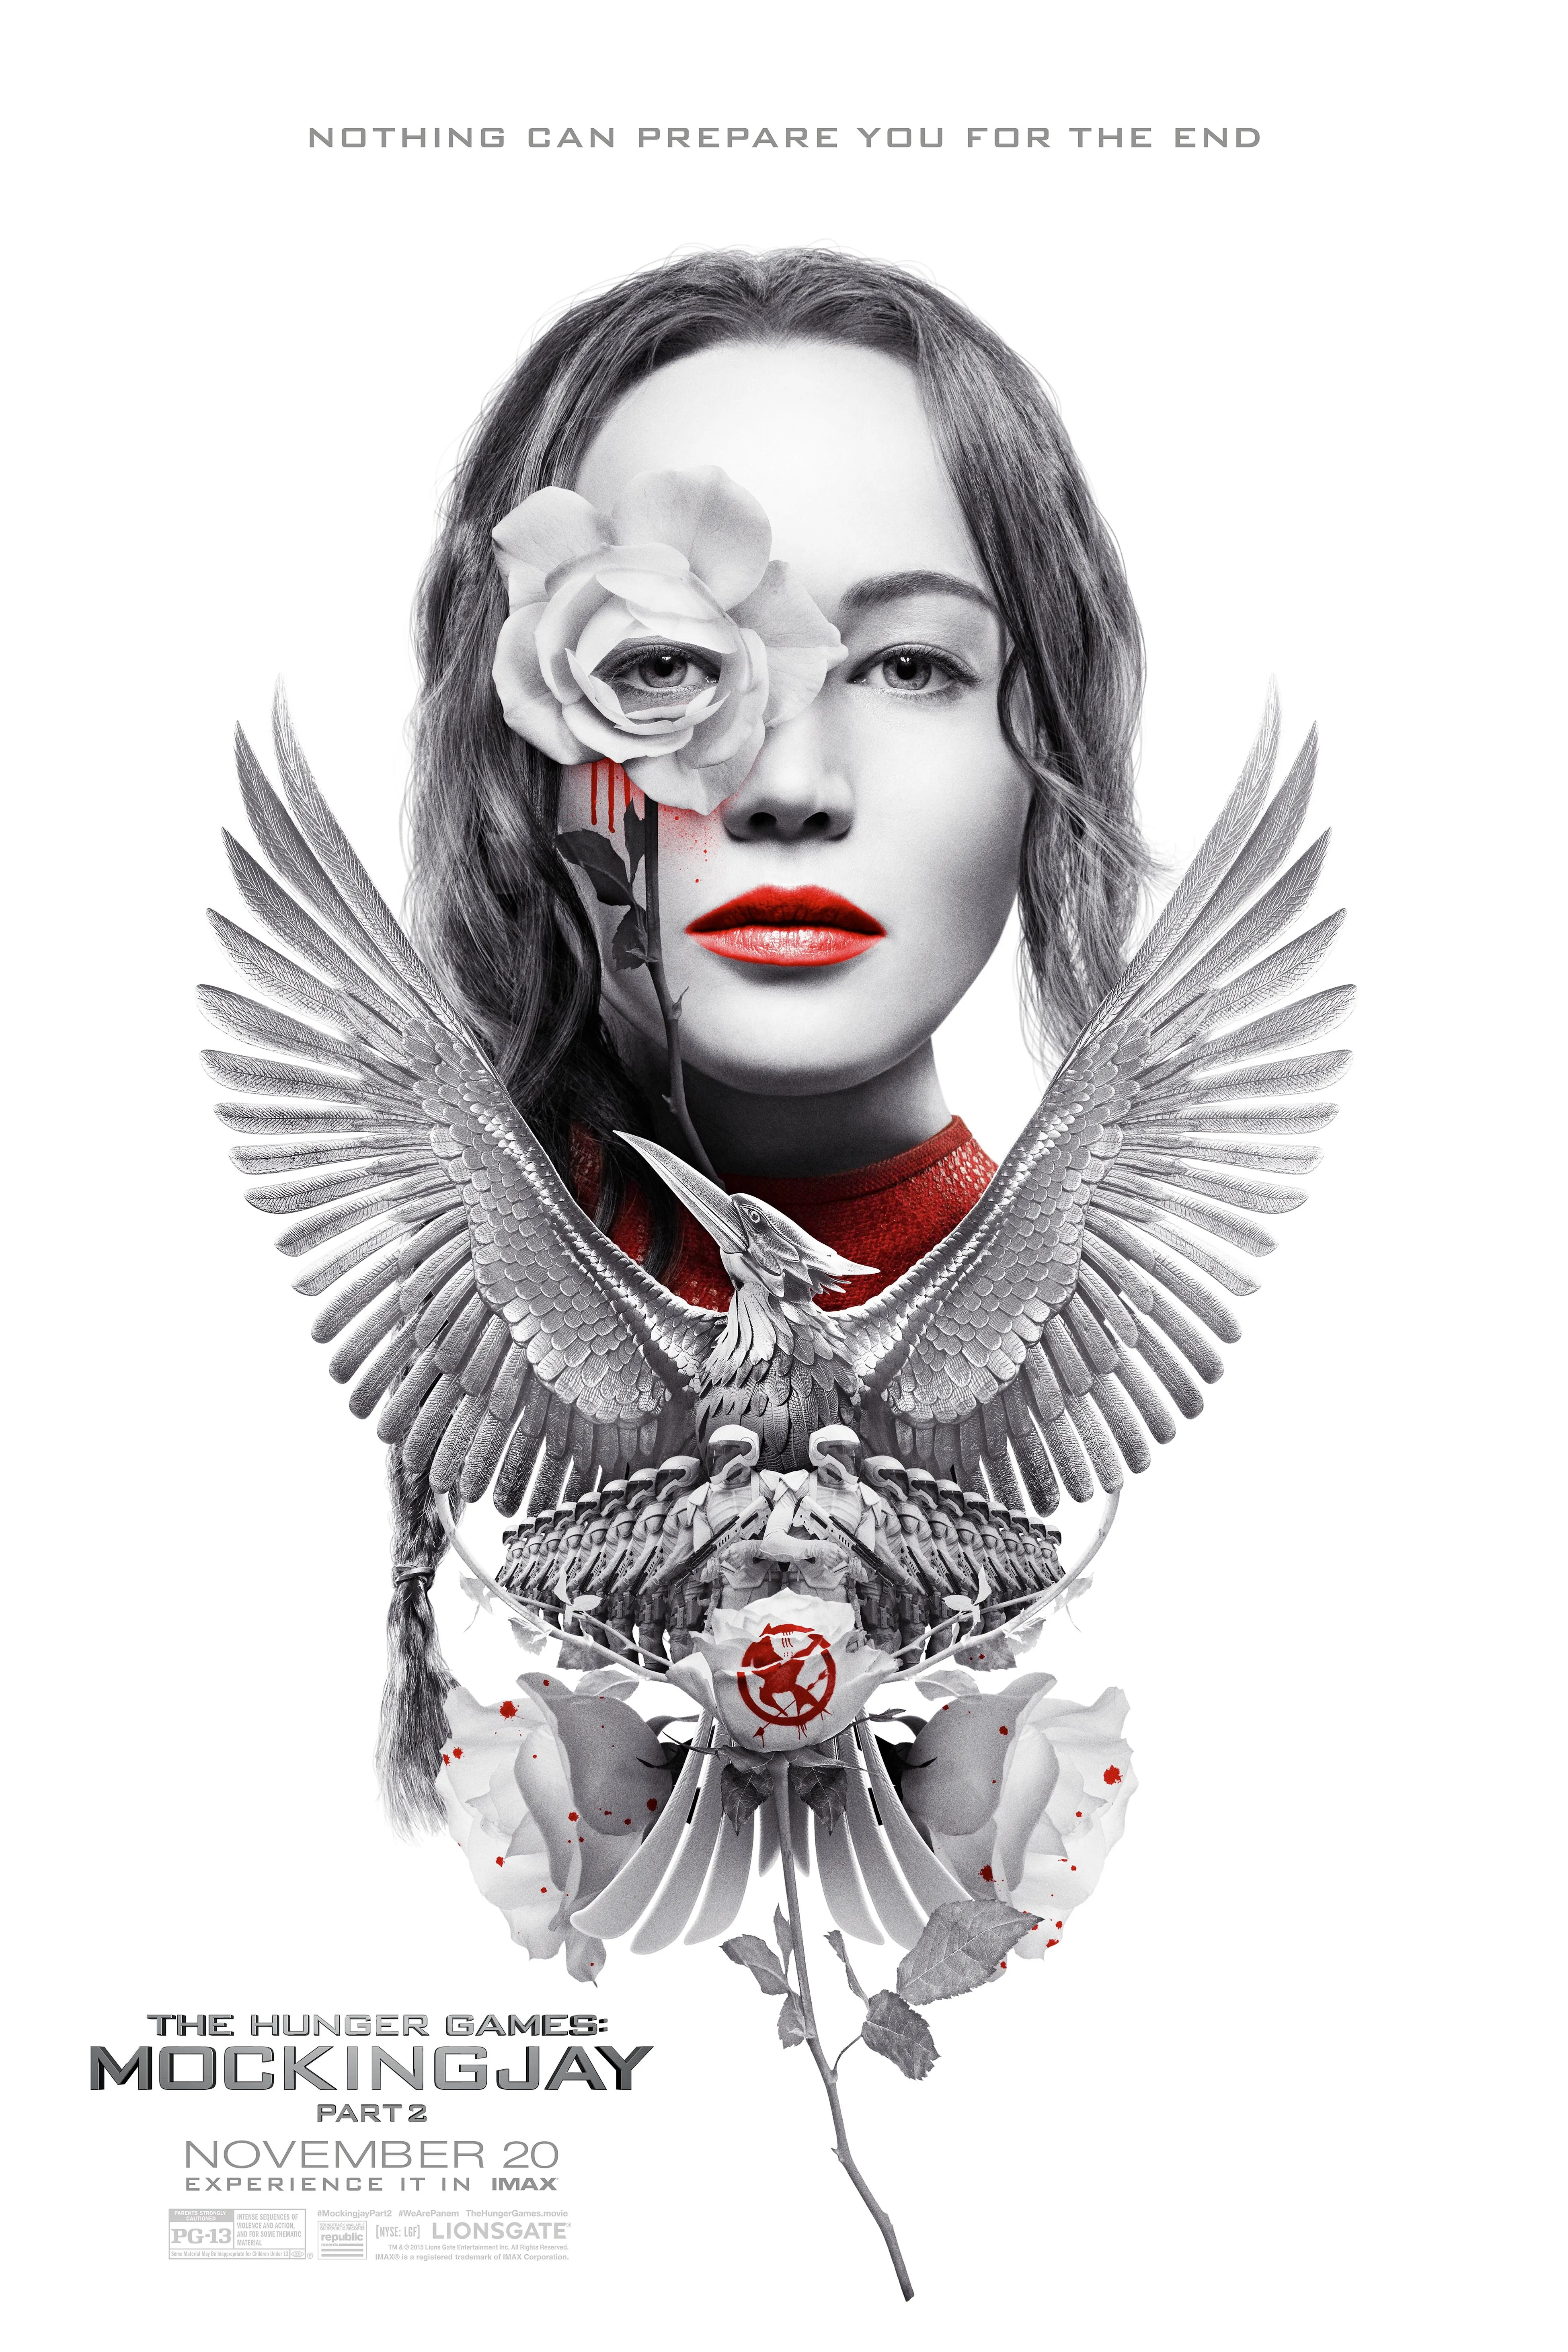 The New Hunger Games Poster Is Full Of Hidden Messages